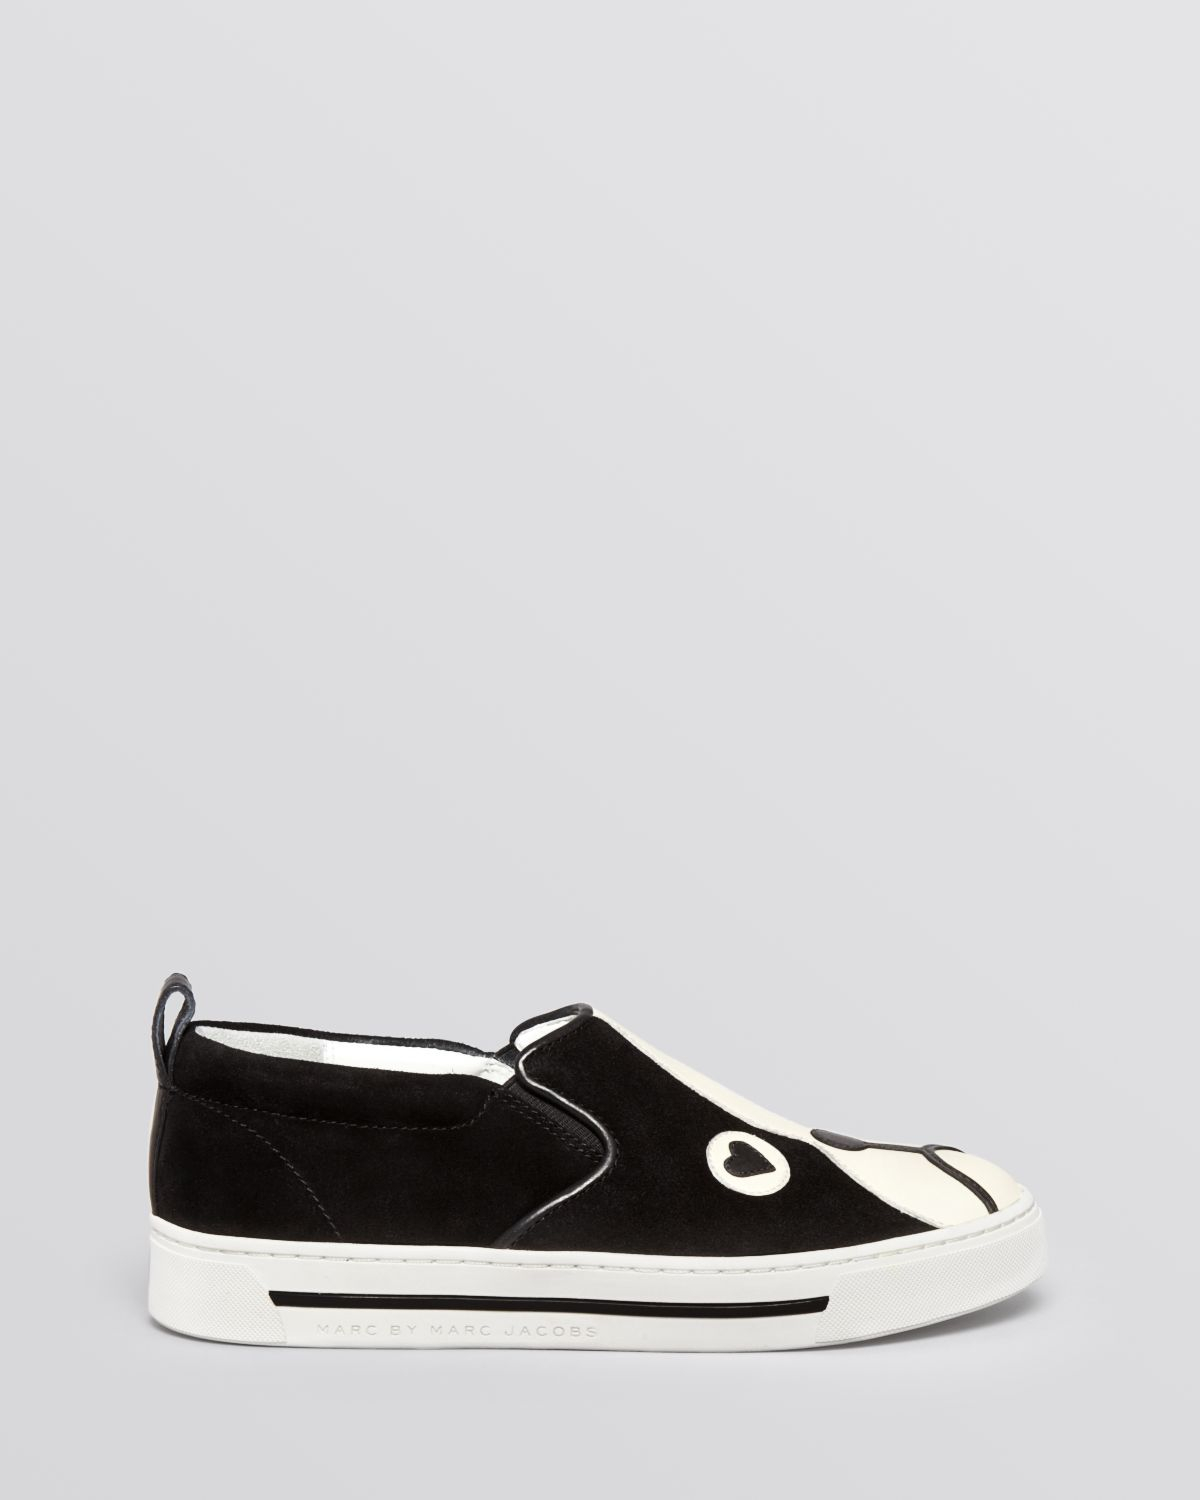 slip-on trainers - Black Marc Jacobs xnrL9gH7